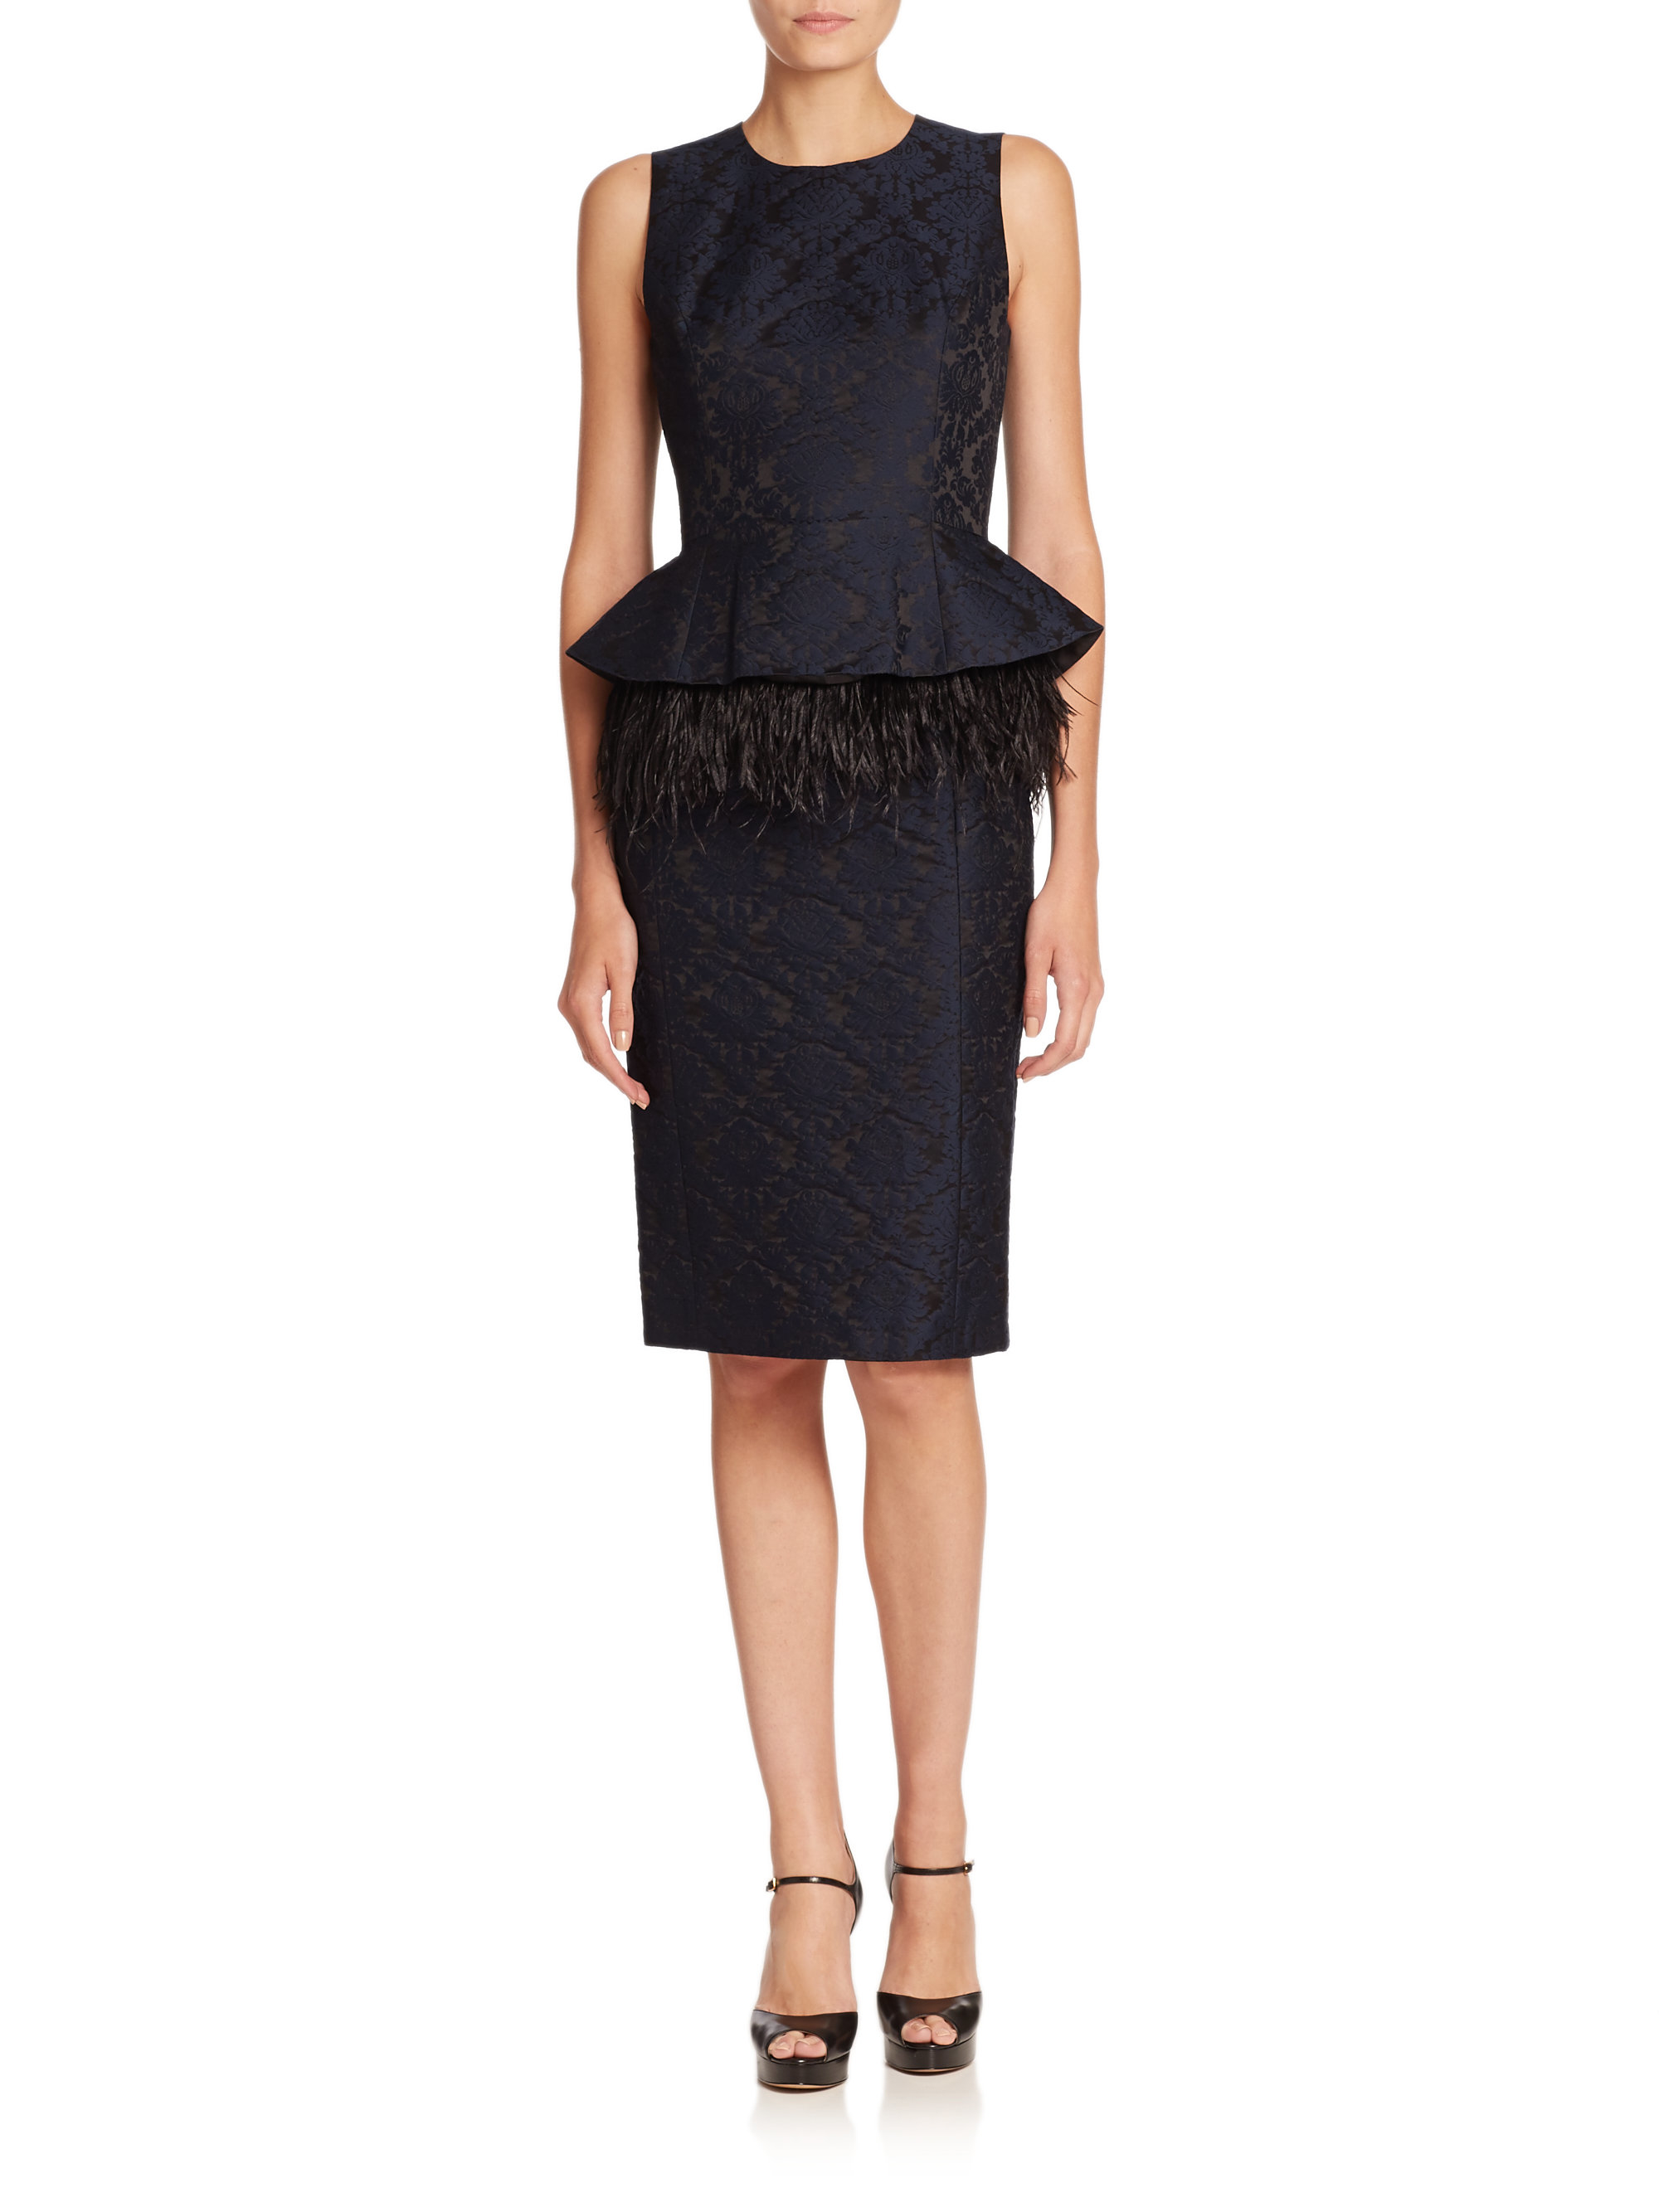 Lyst Michael Kors Feather Trimmed Brocade Peplum Dress